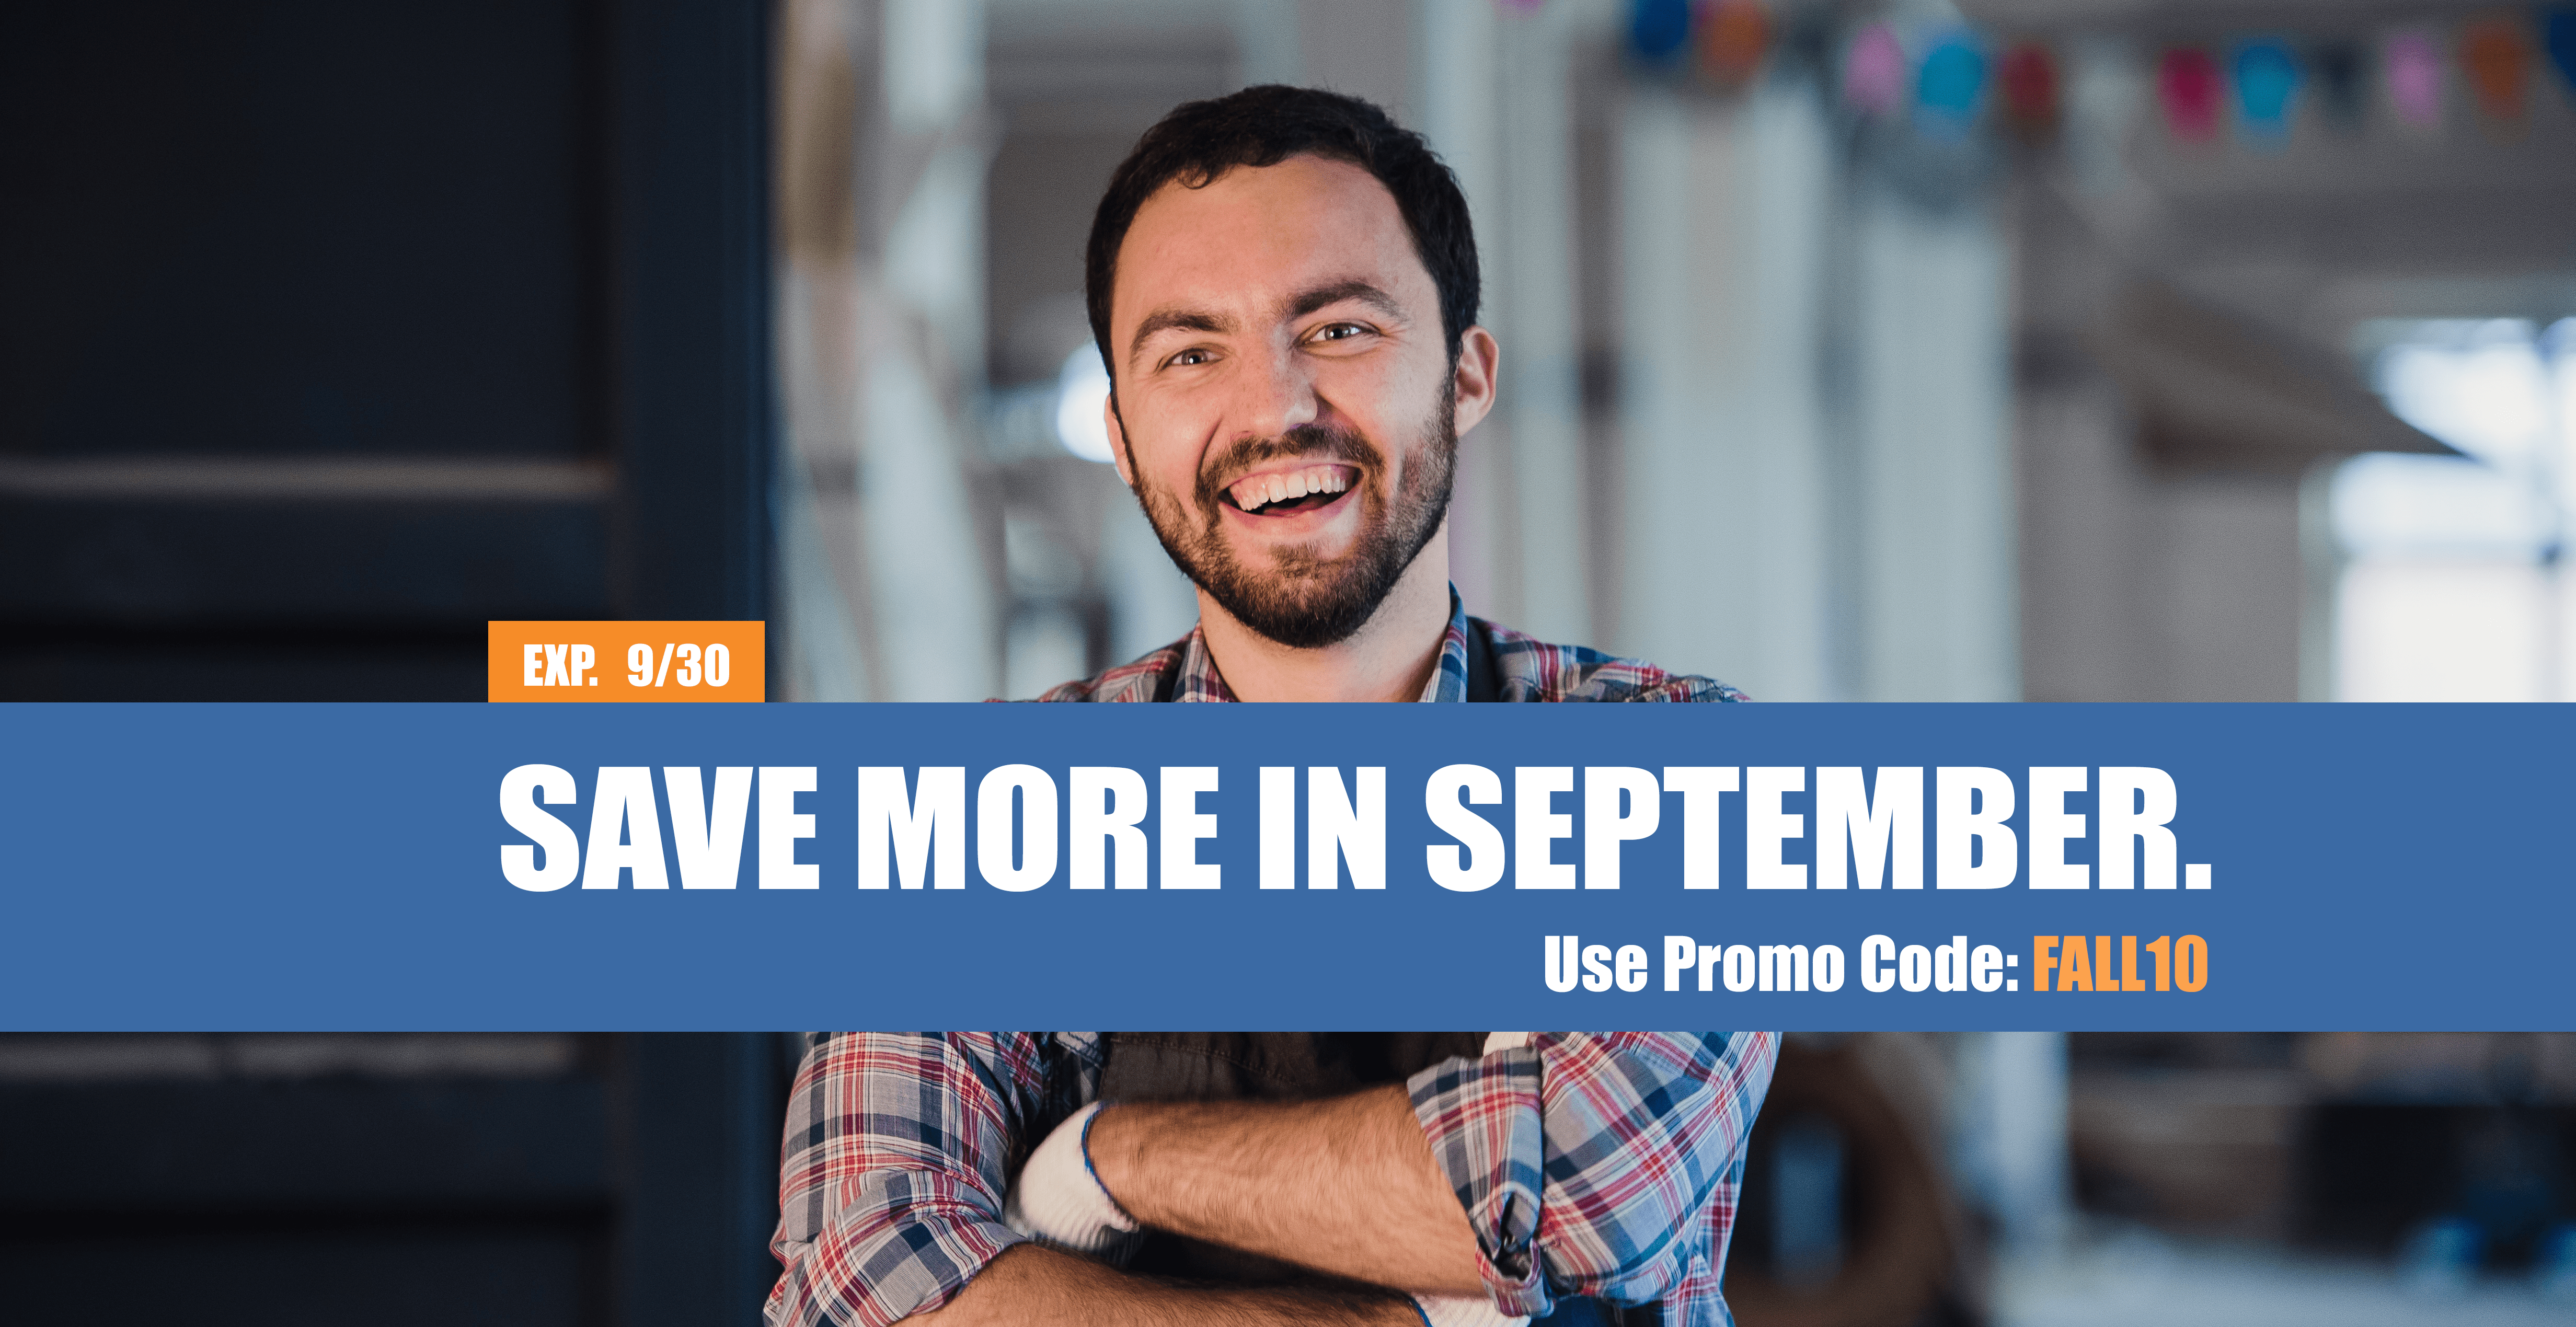 Save More in September!